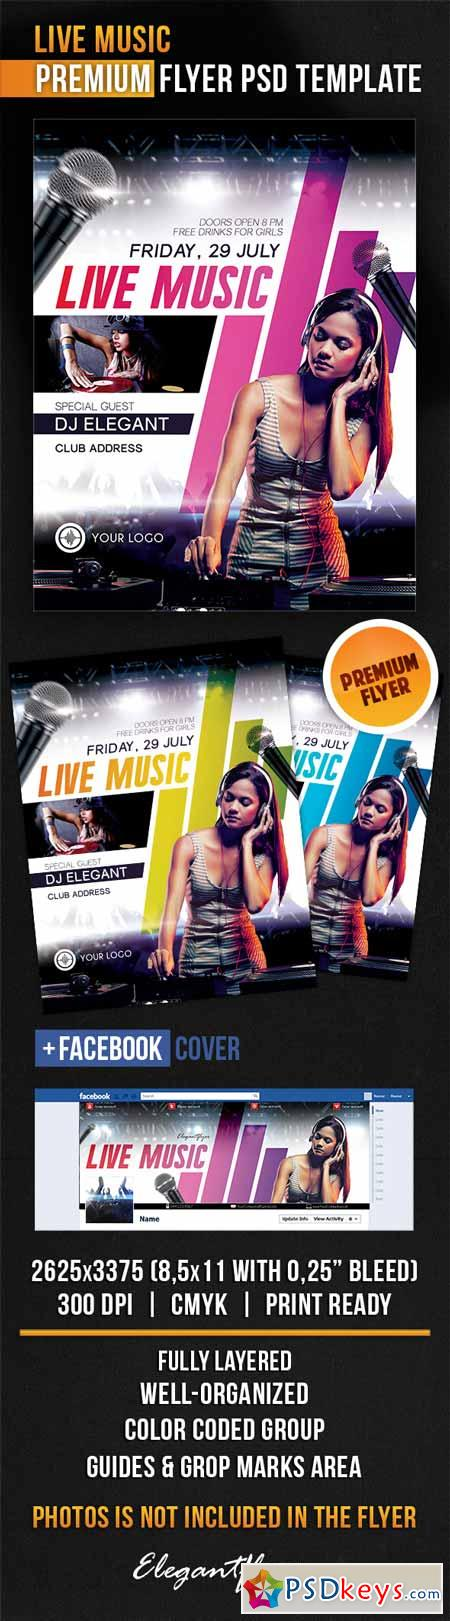 Live Music - Flyer PSD Template + Facebook Cover 2 » Free ...